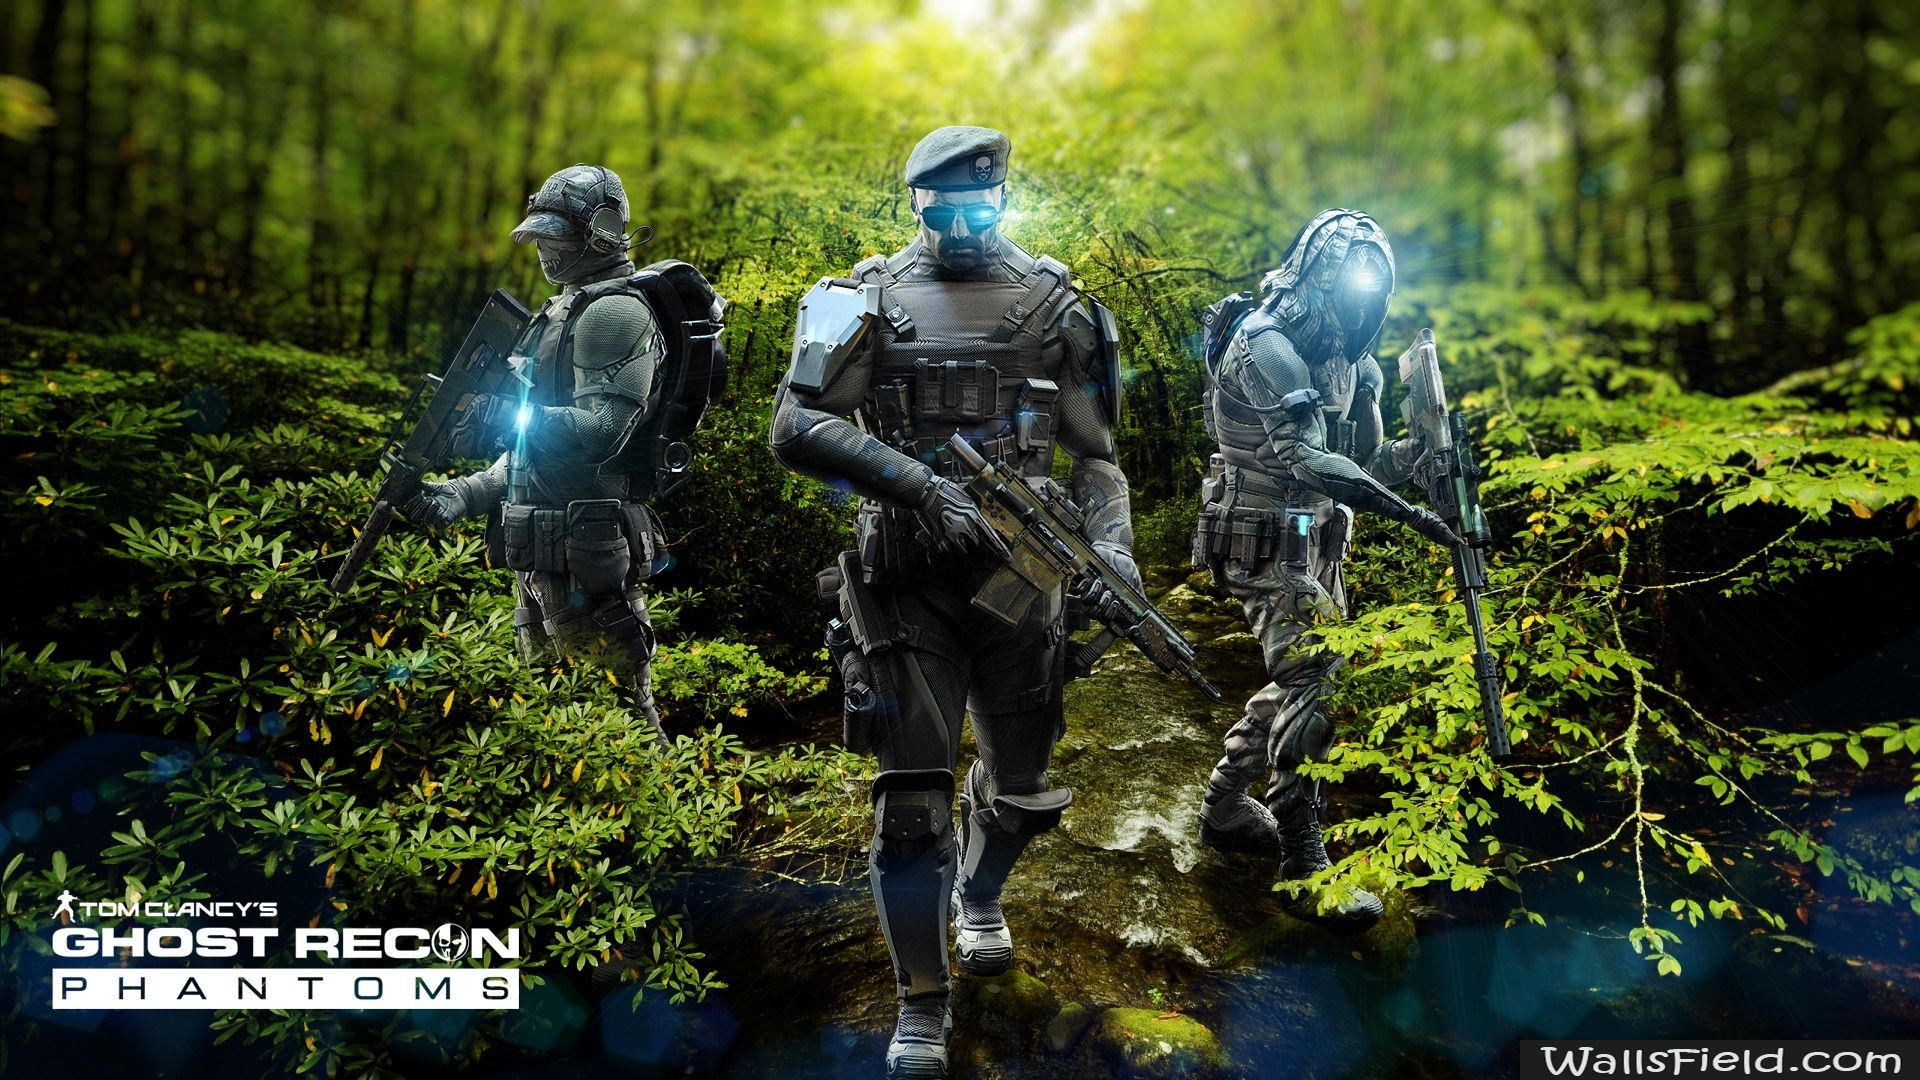 You Can View Download And Comment On Ghost Recon Phantoms Jungle Pack Free Hd Wallpapers For Your Desktop Backgrounds Mobile Tablet In Different